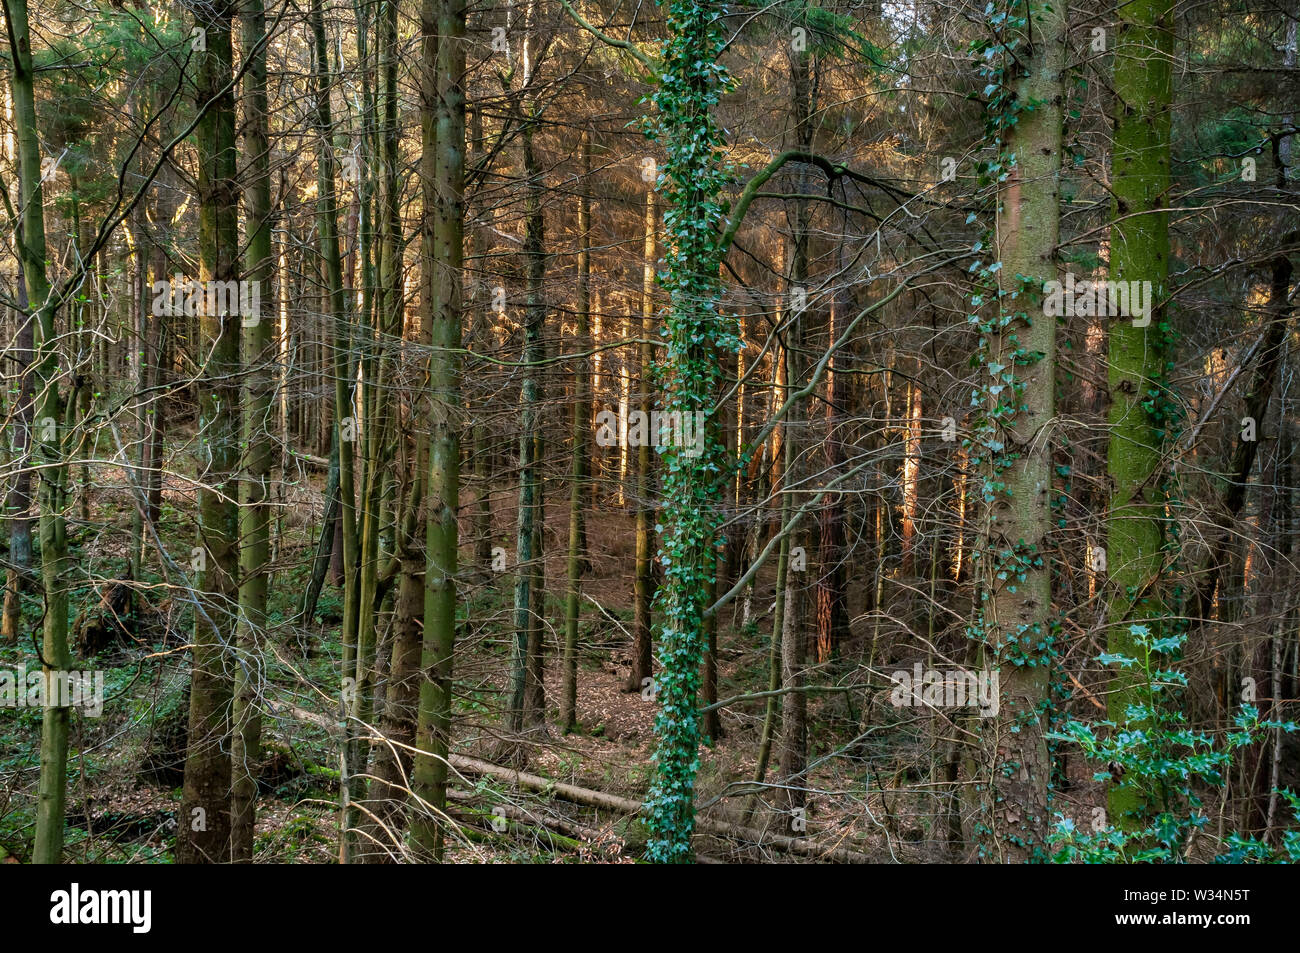 Sun-dappled view of the trunks of a conifer plantation near Wyming Brook Gorge on the outskirts of Sheffield, South Yorkshire. - Stock Image